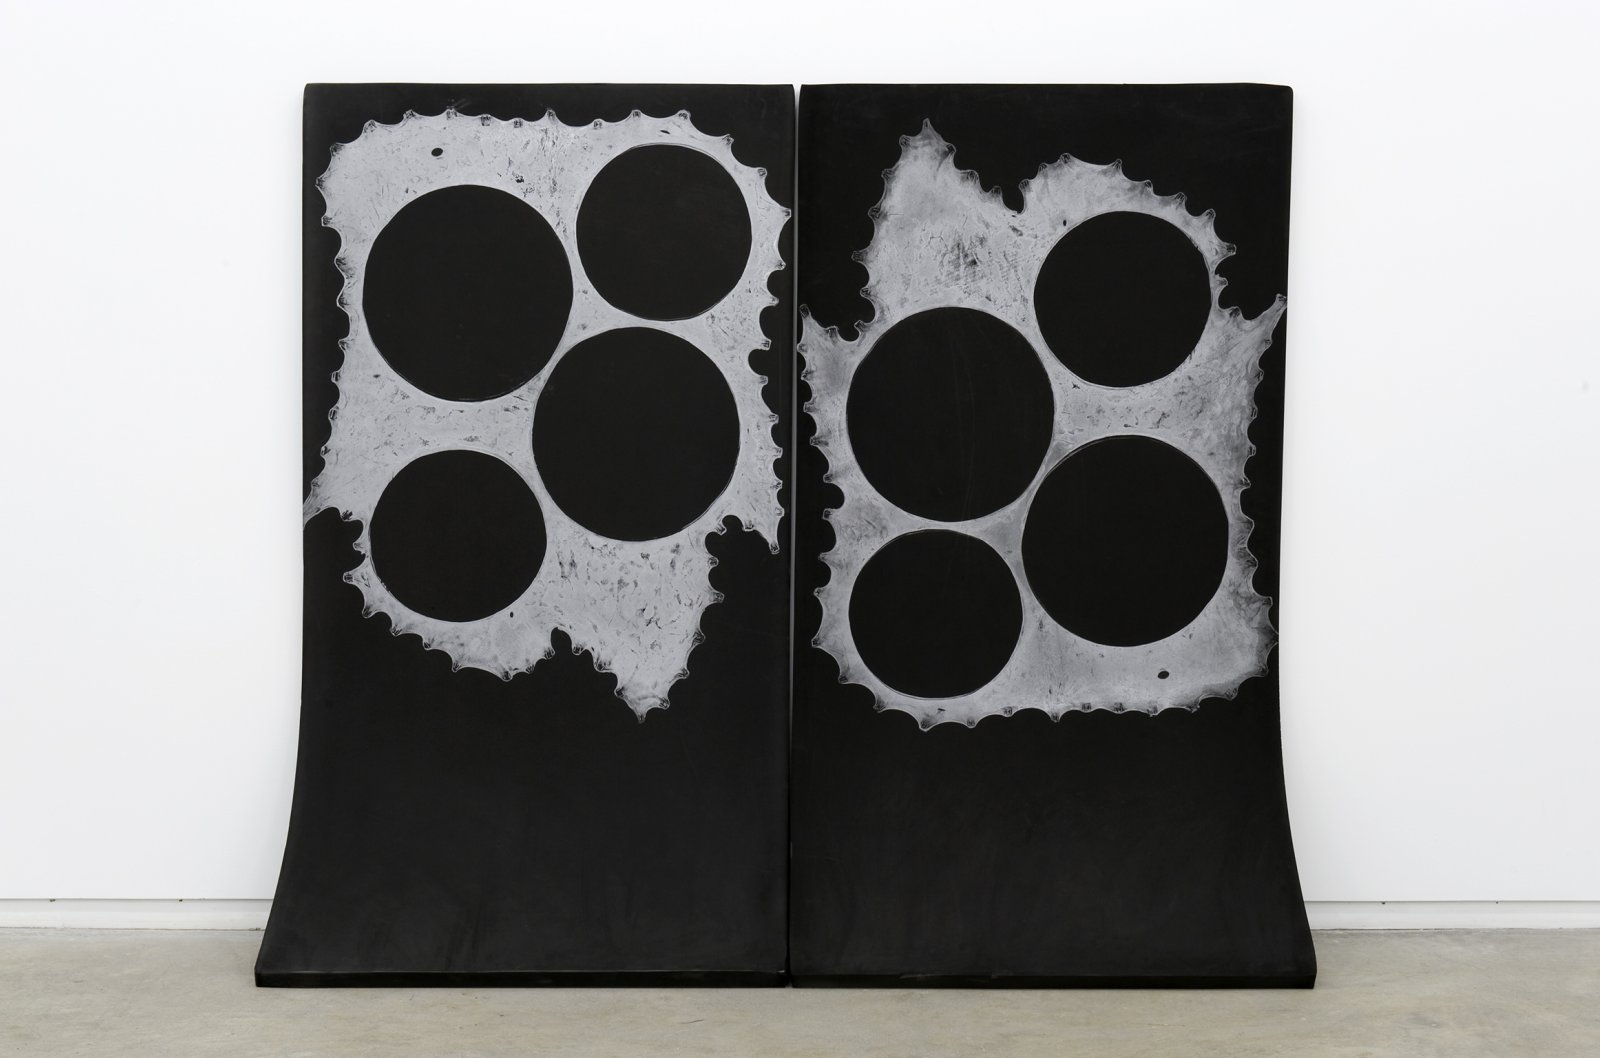 Brian Jungen,Me and My Brother, 2010–2011, foam, silver relief ink, 72 x 83 x 20 in. (183 x 207 x 51 cm)